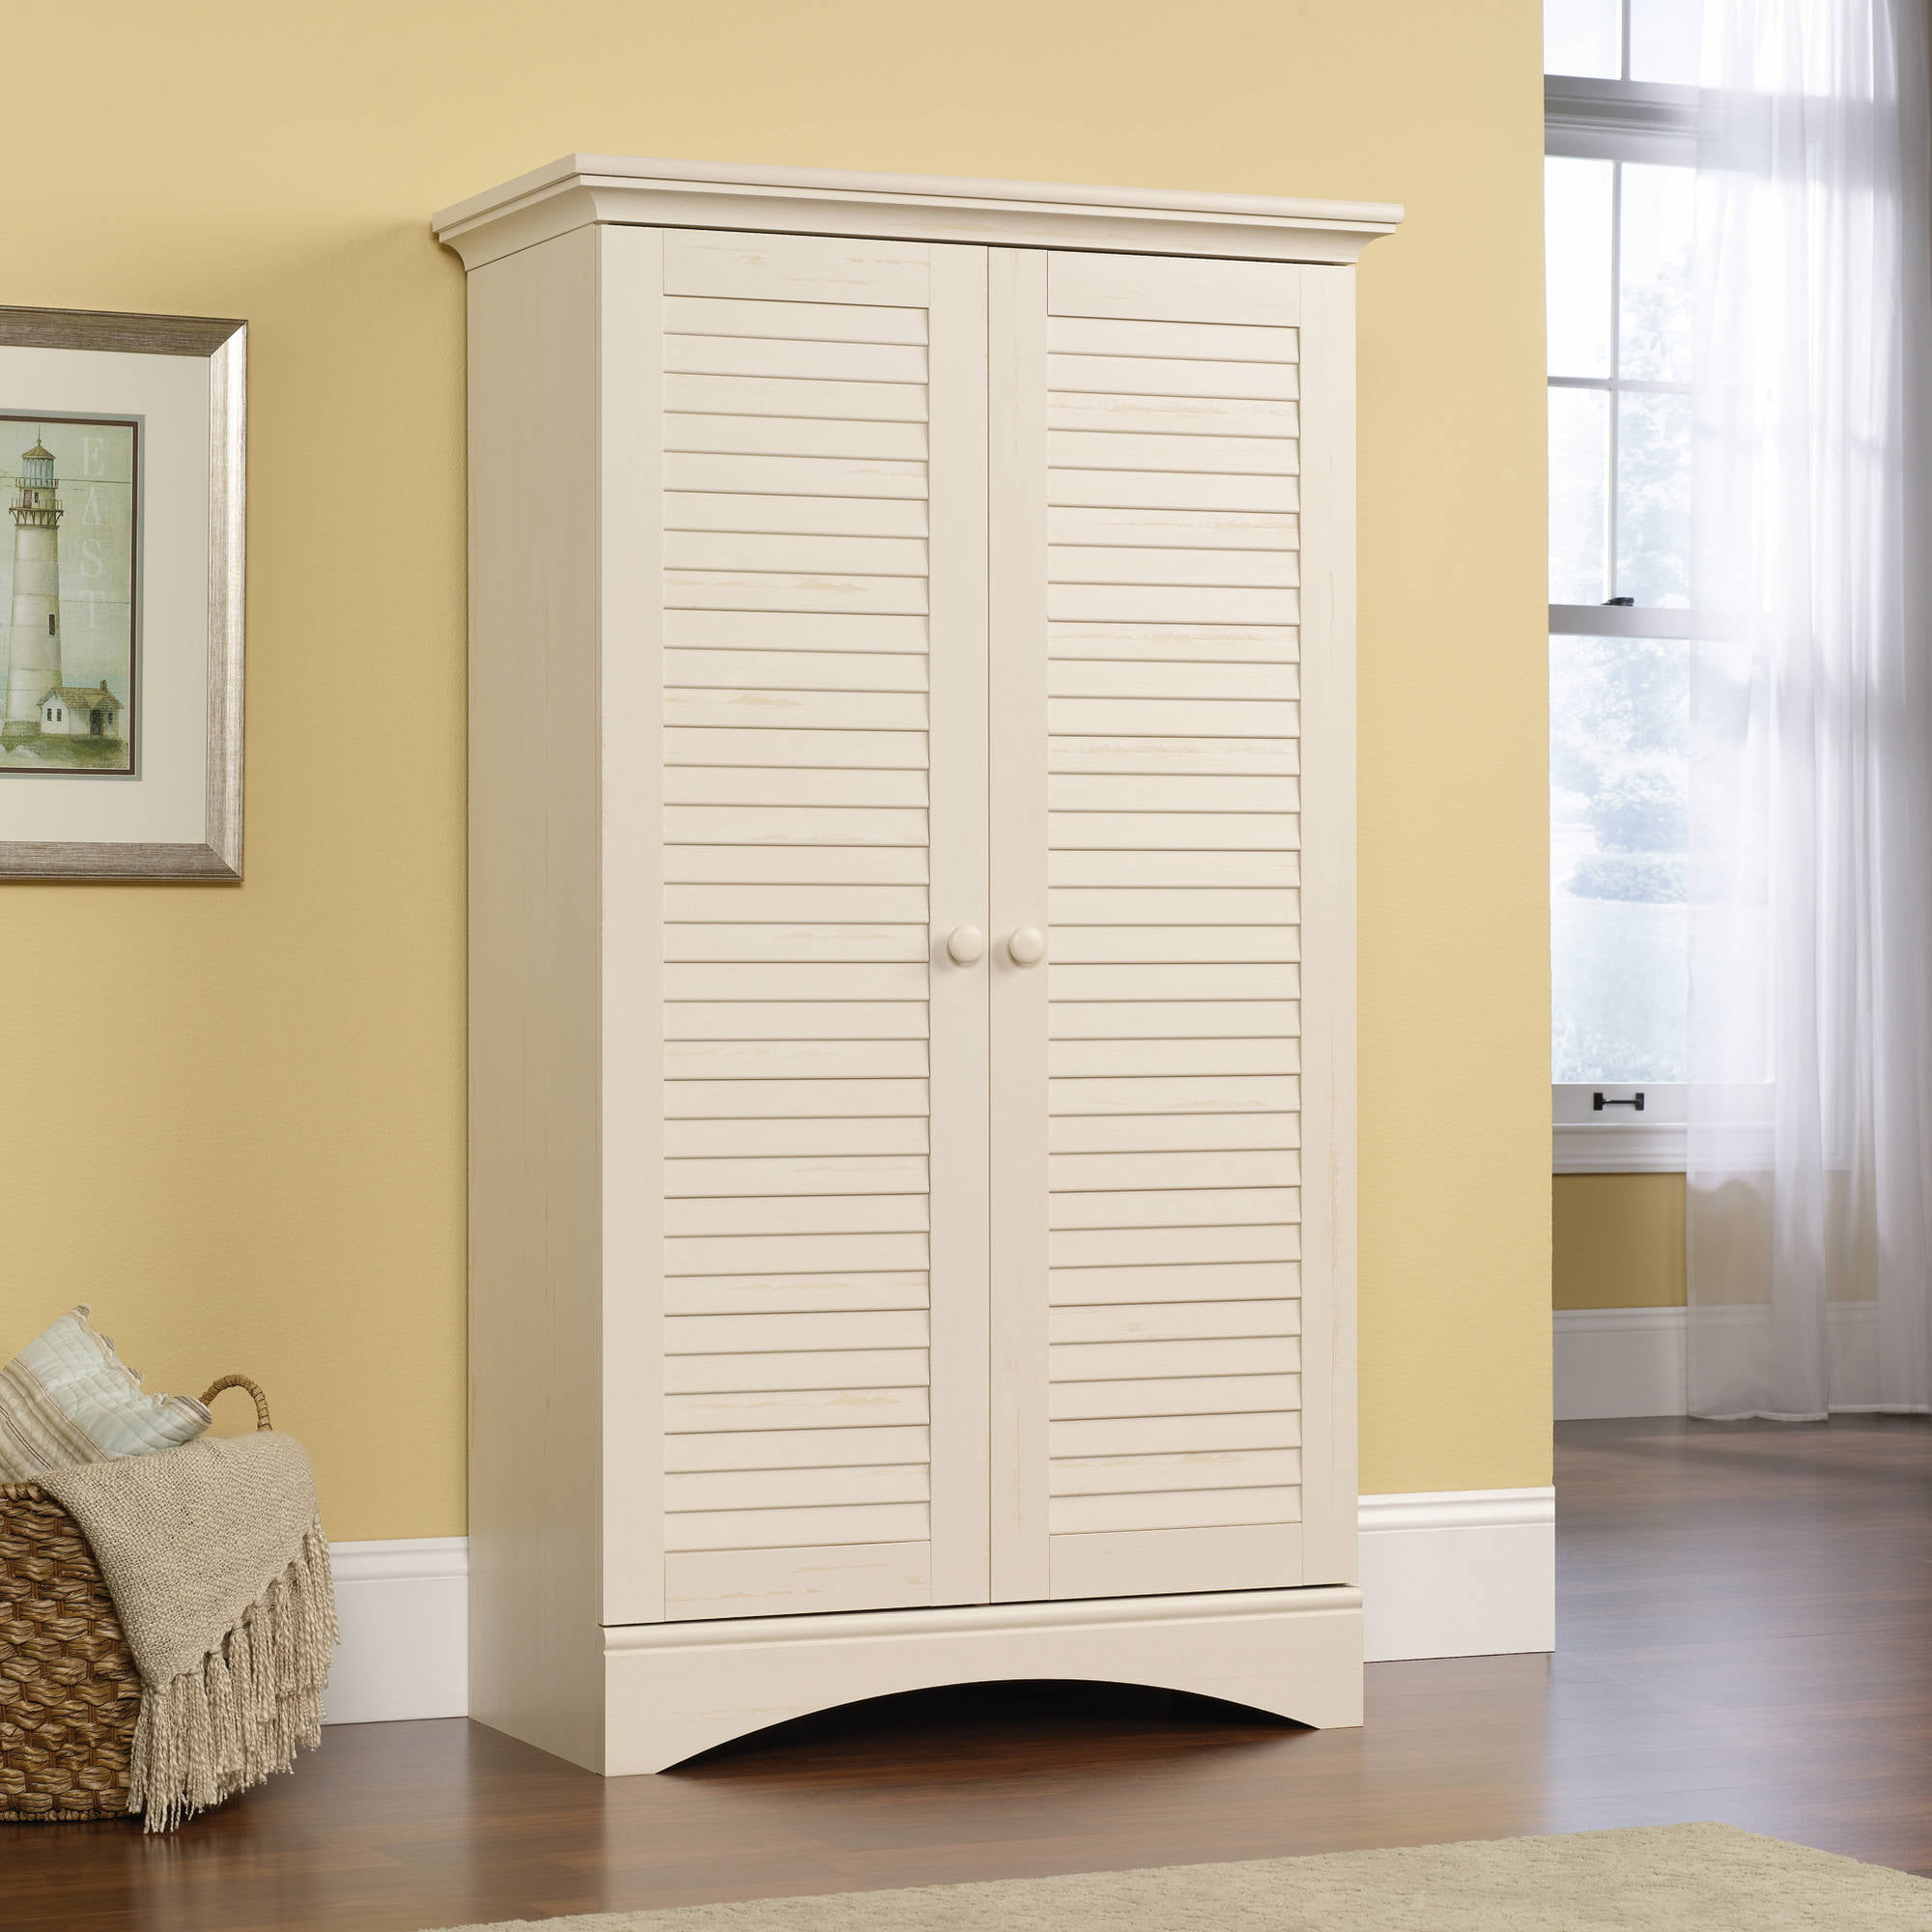 Sauder, Storage Cabinet, Cinnamon Cherry Finish - Walmart.com